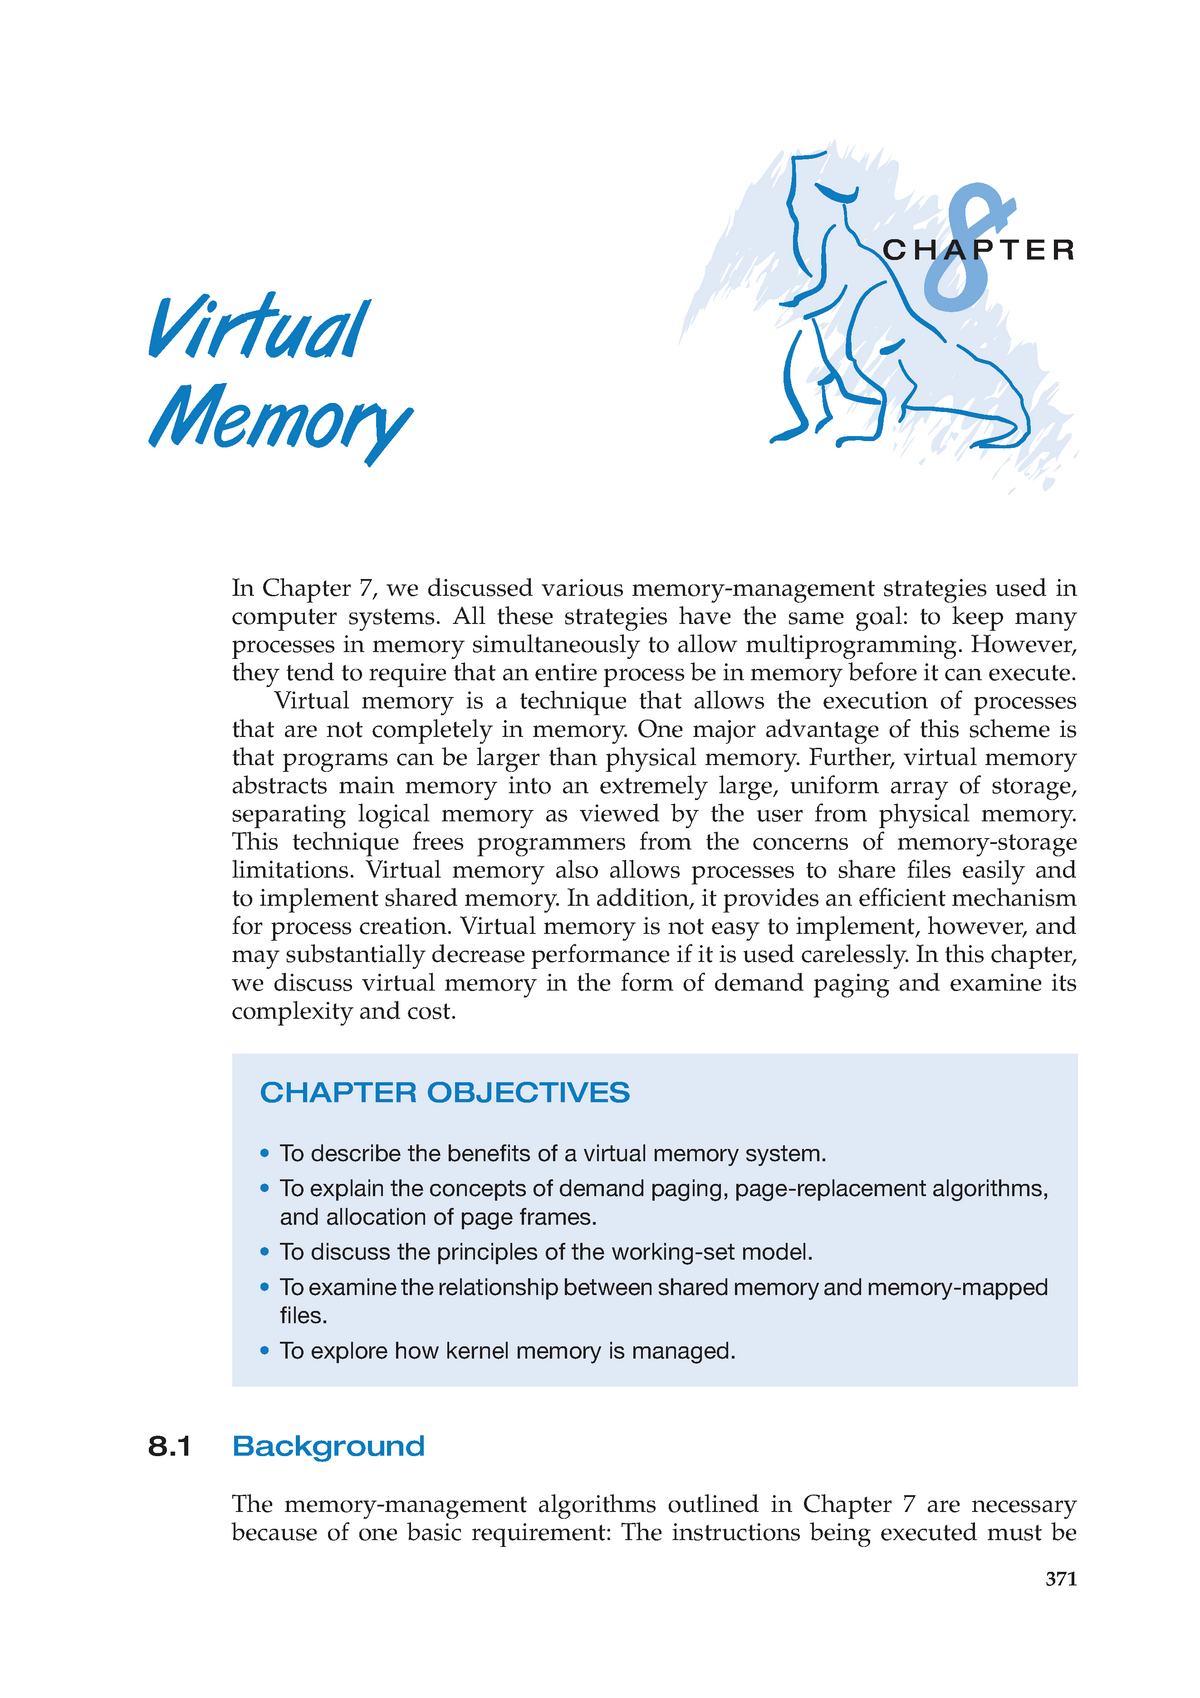 Chapter 08 - Virtual Memory - COMP3301: Operating Systems